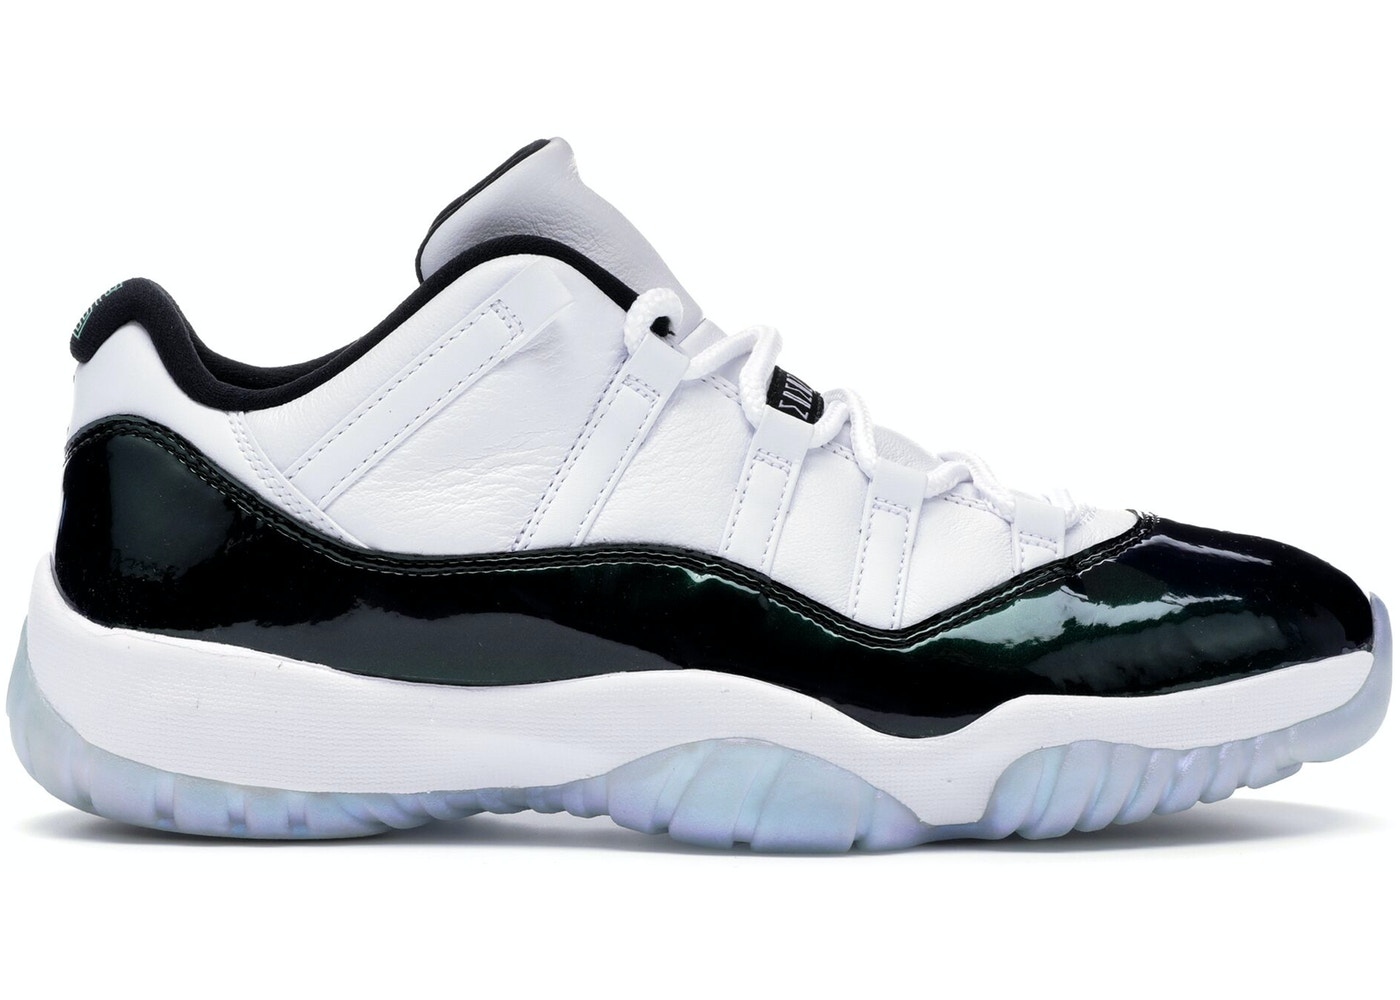 bf4e3873824 Jordan 11 Retro Low Iridescent - 528895-145